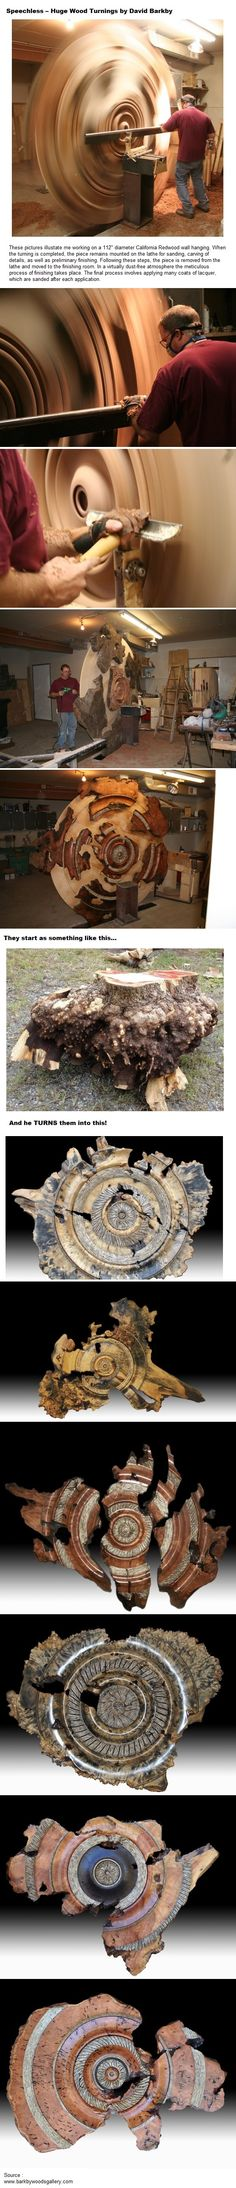 Speechless ..Huge Wood Turnings by David Barkby! Visit http://www.handymantips.org/category/woodworking/ for more woodworking tips!